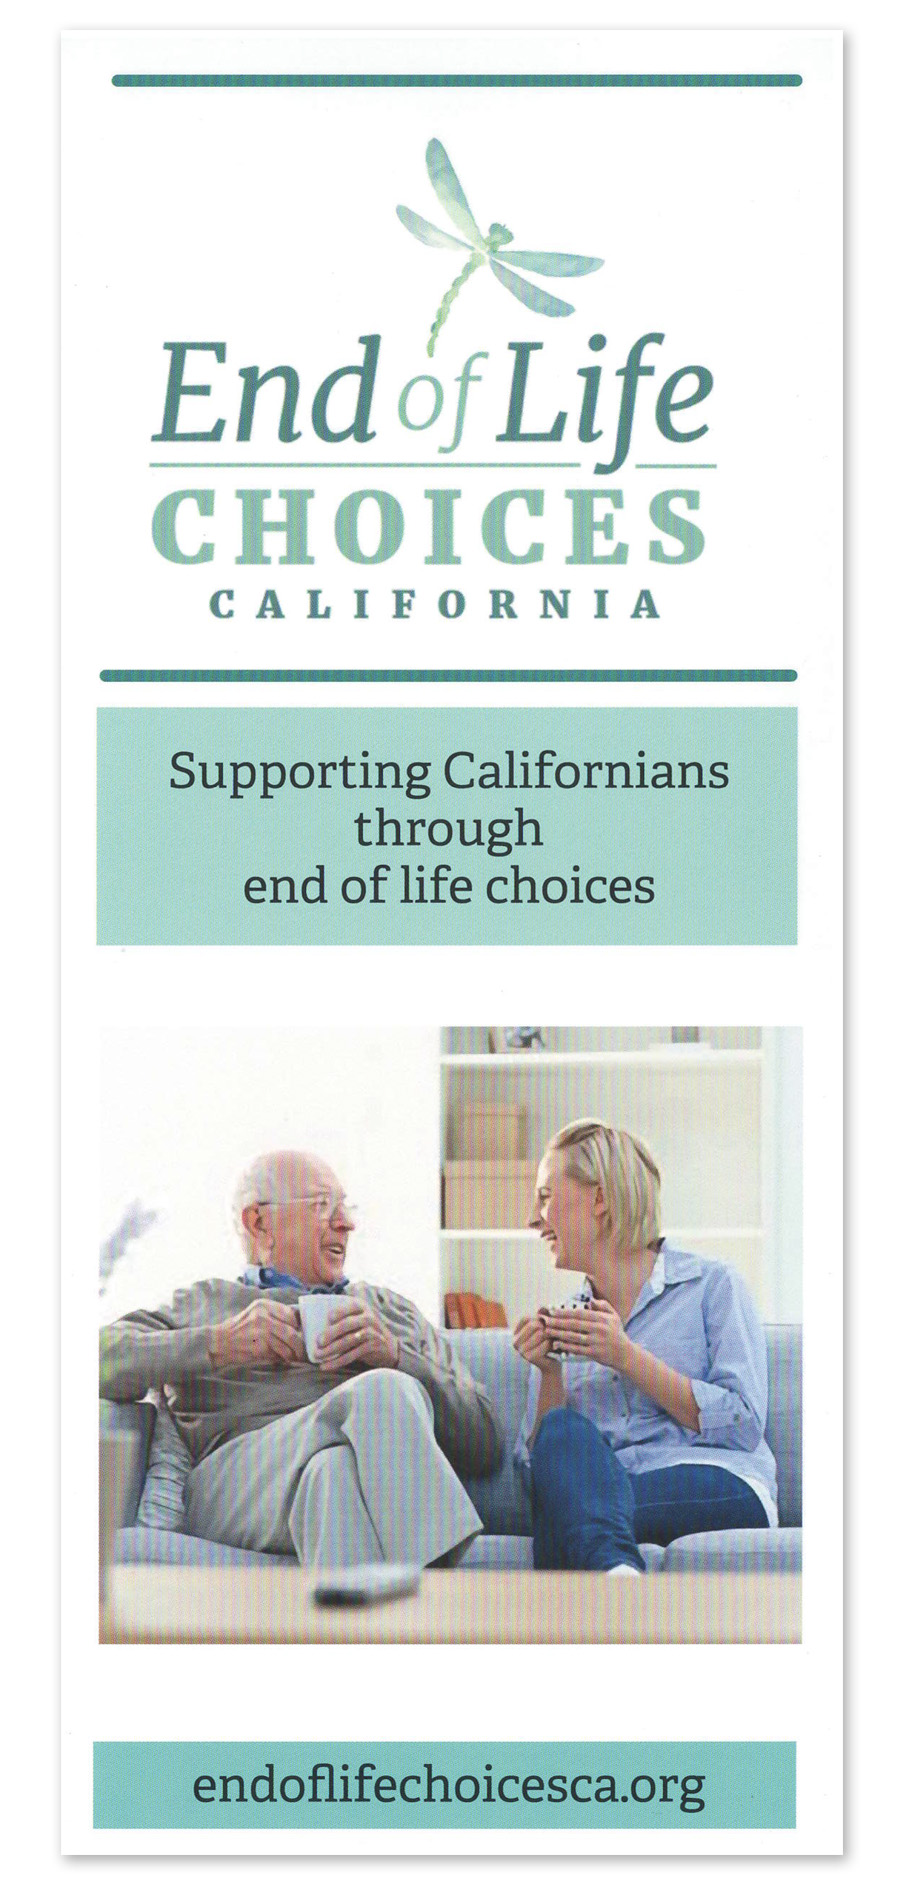 End of Life Choices California EOLCCA Brochure Donate!